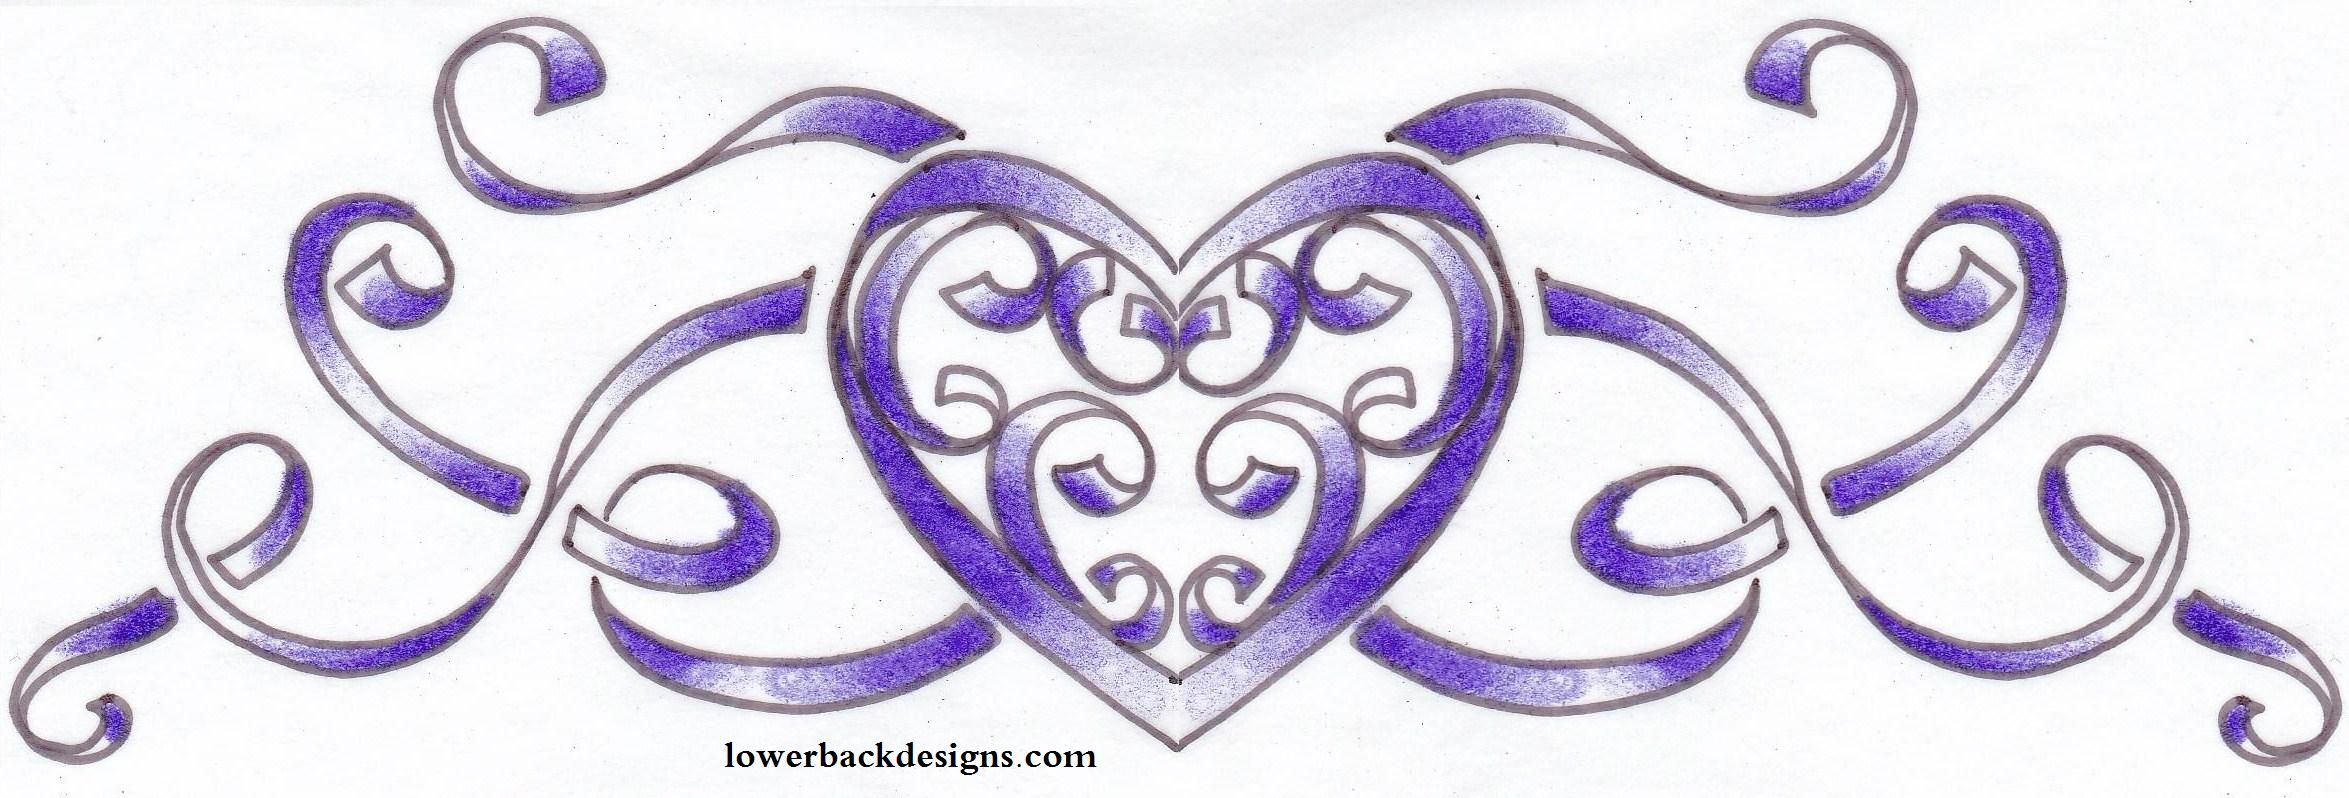 Heart tattoos designs - Image Detail For Ribbon Tattoo Design Tattoo Design Heart Ribbon Tattoo Banner